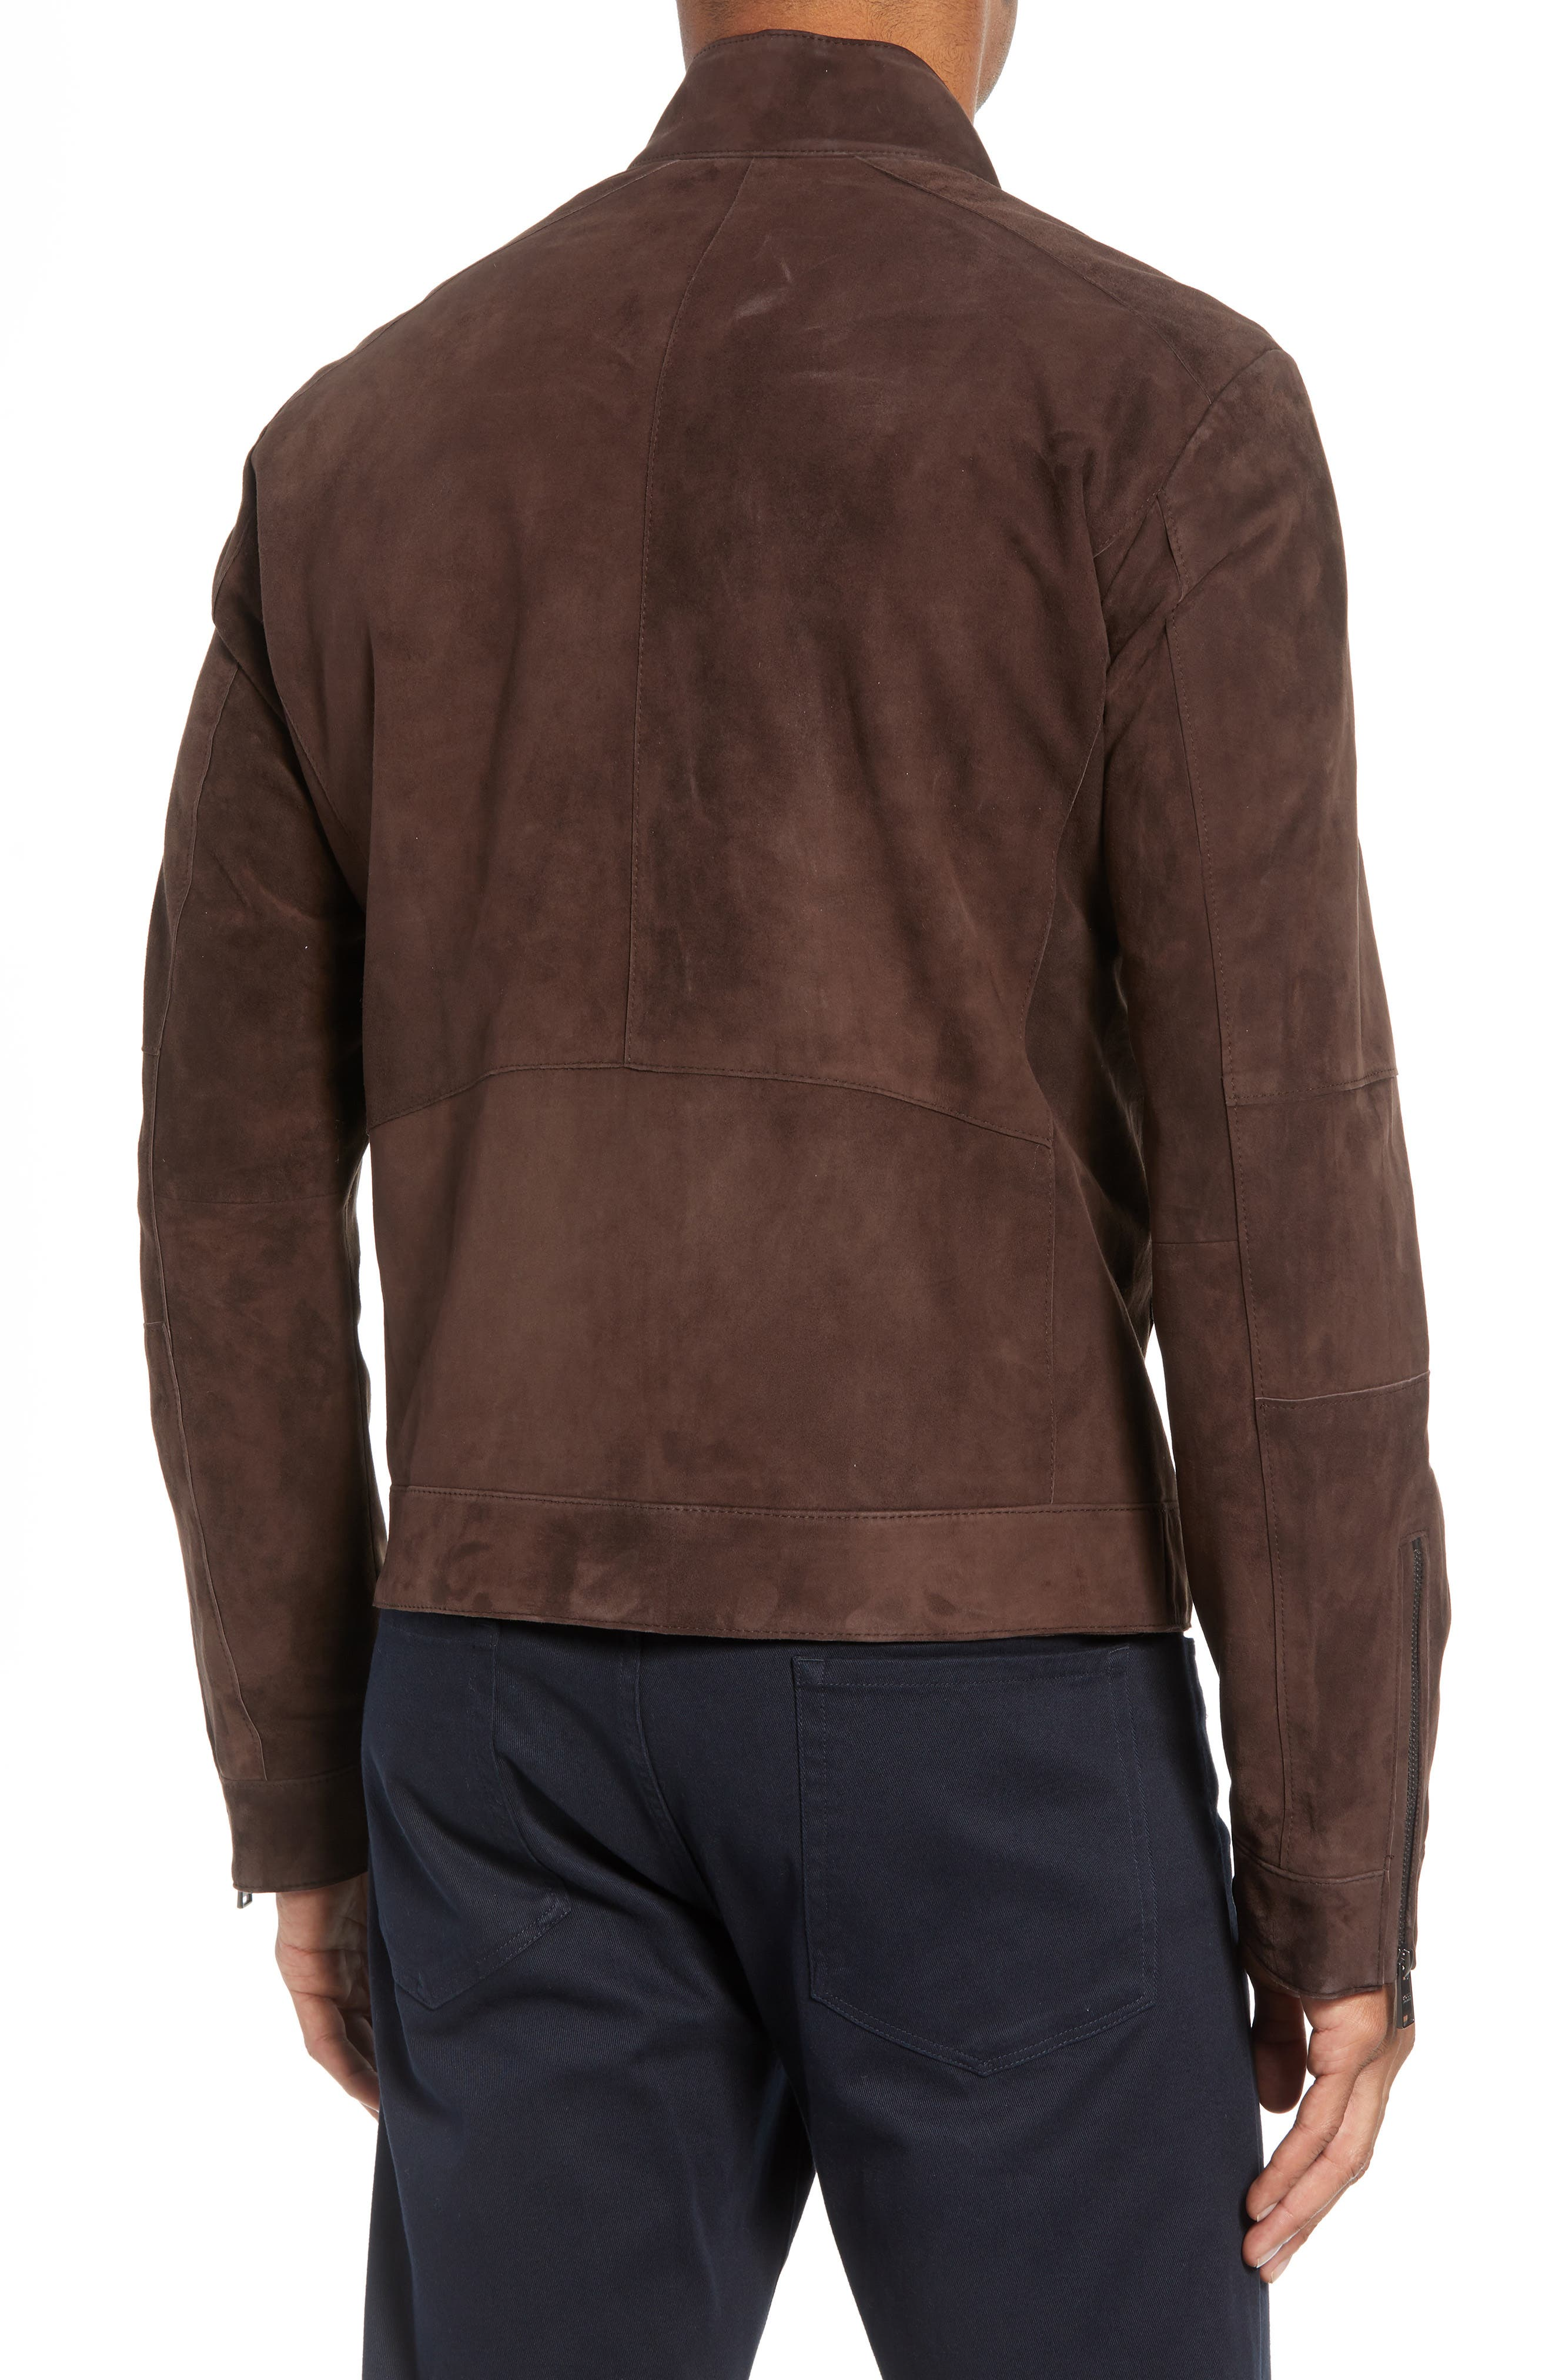 T-Nalok Suede Jacket,                             Alternate thumbnail 2, color,                             202